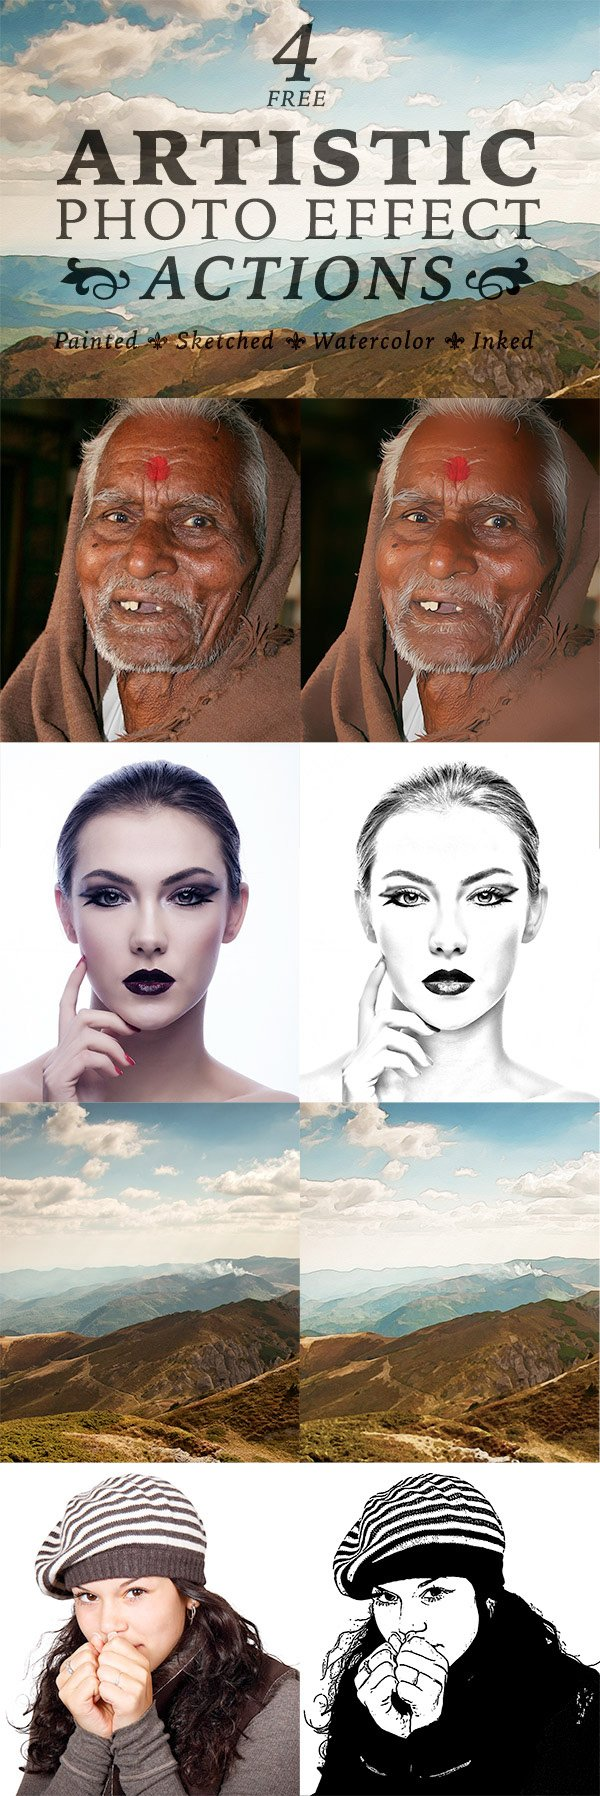 4 Free Artistic Paint, Sketch & Ink Photo Effect Actions